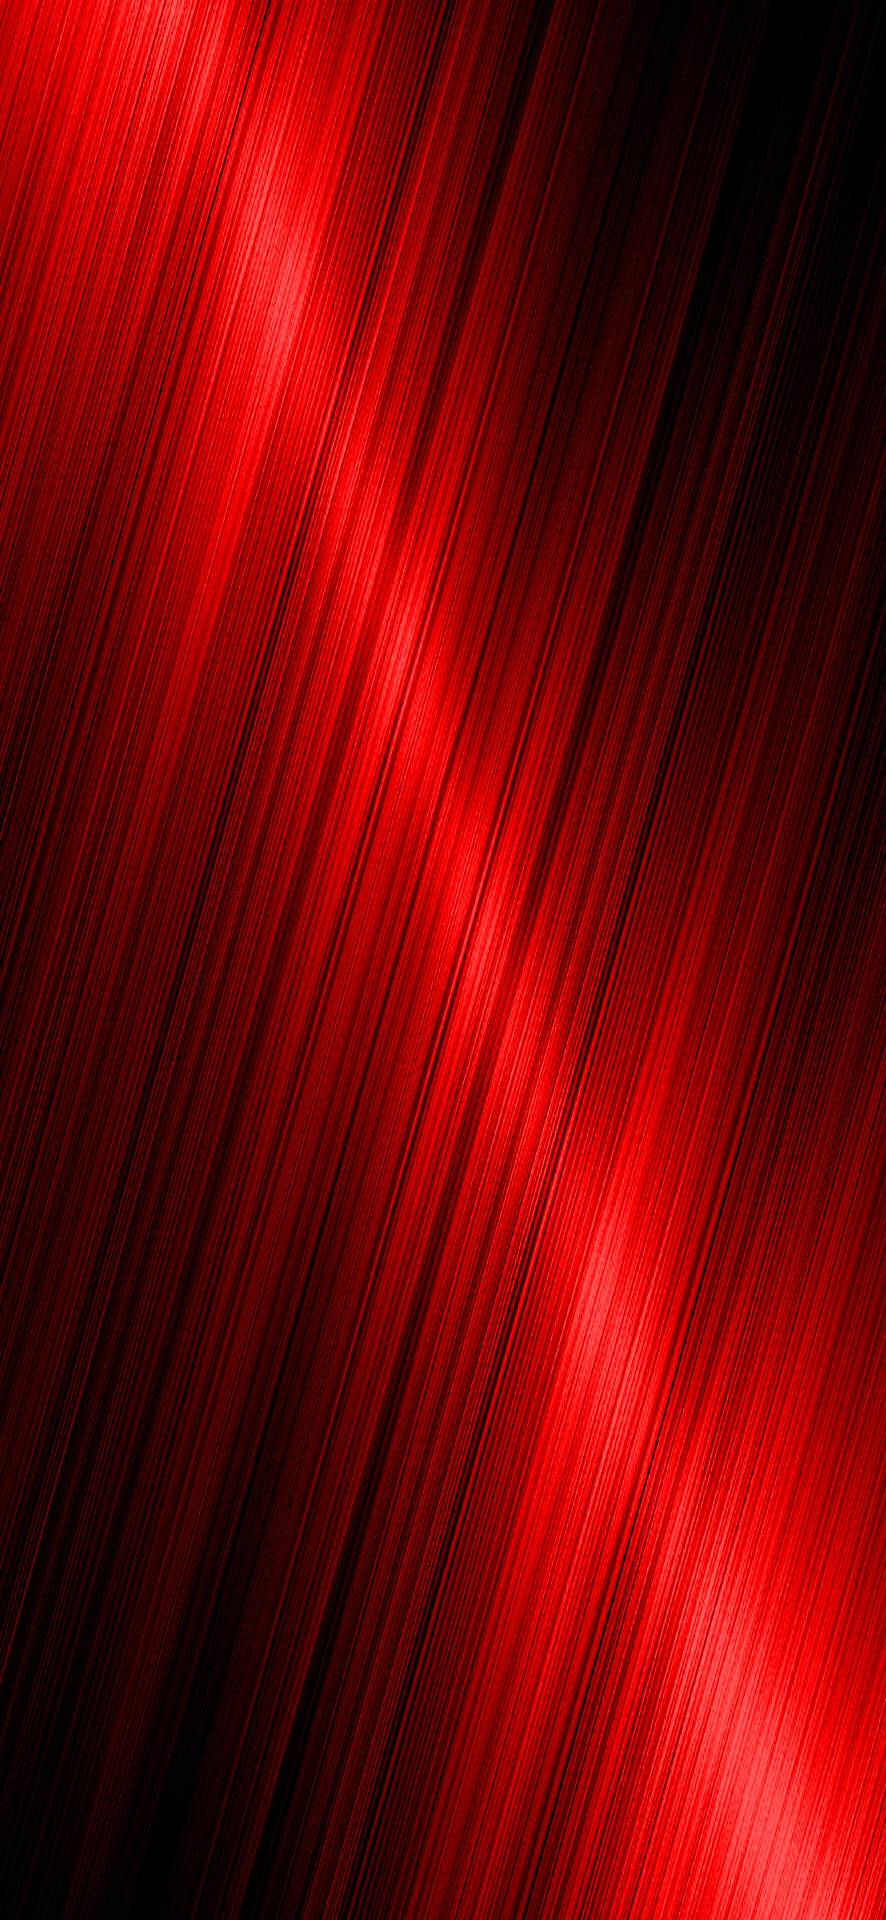 red background wallpaper hd 18 red background wallpaper hd 18